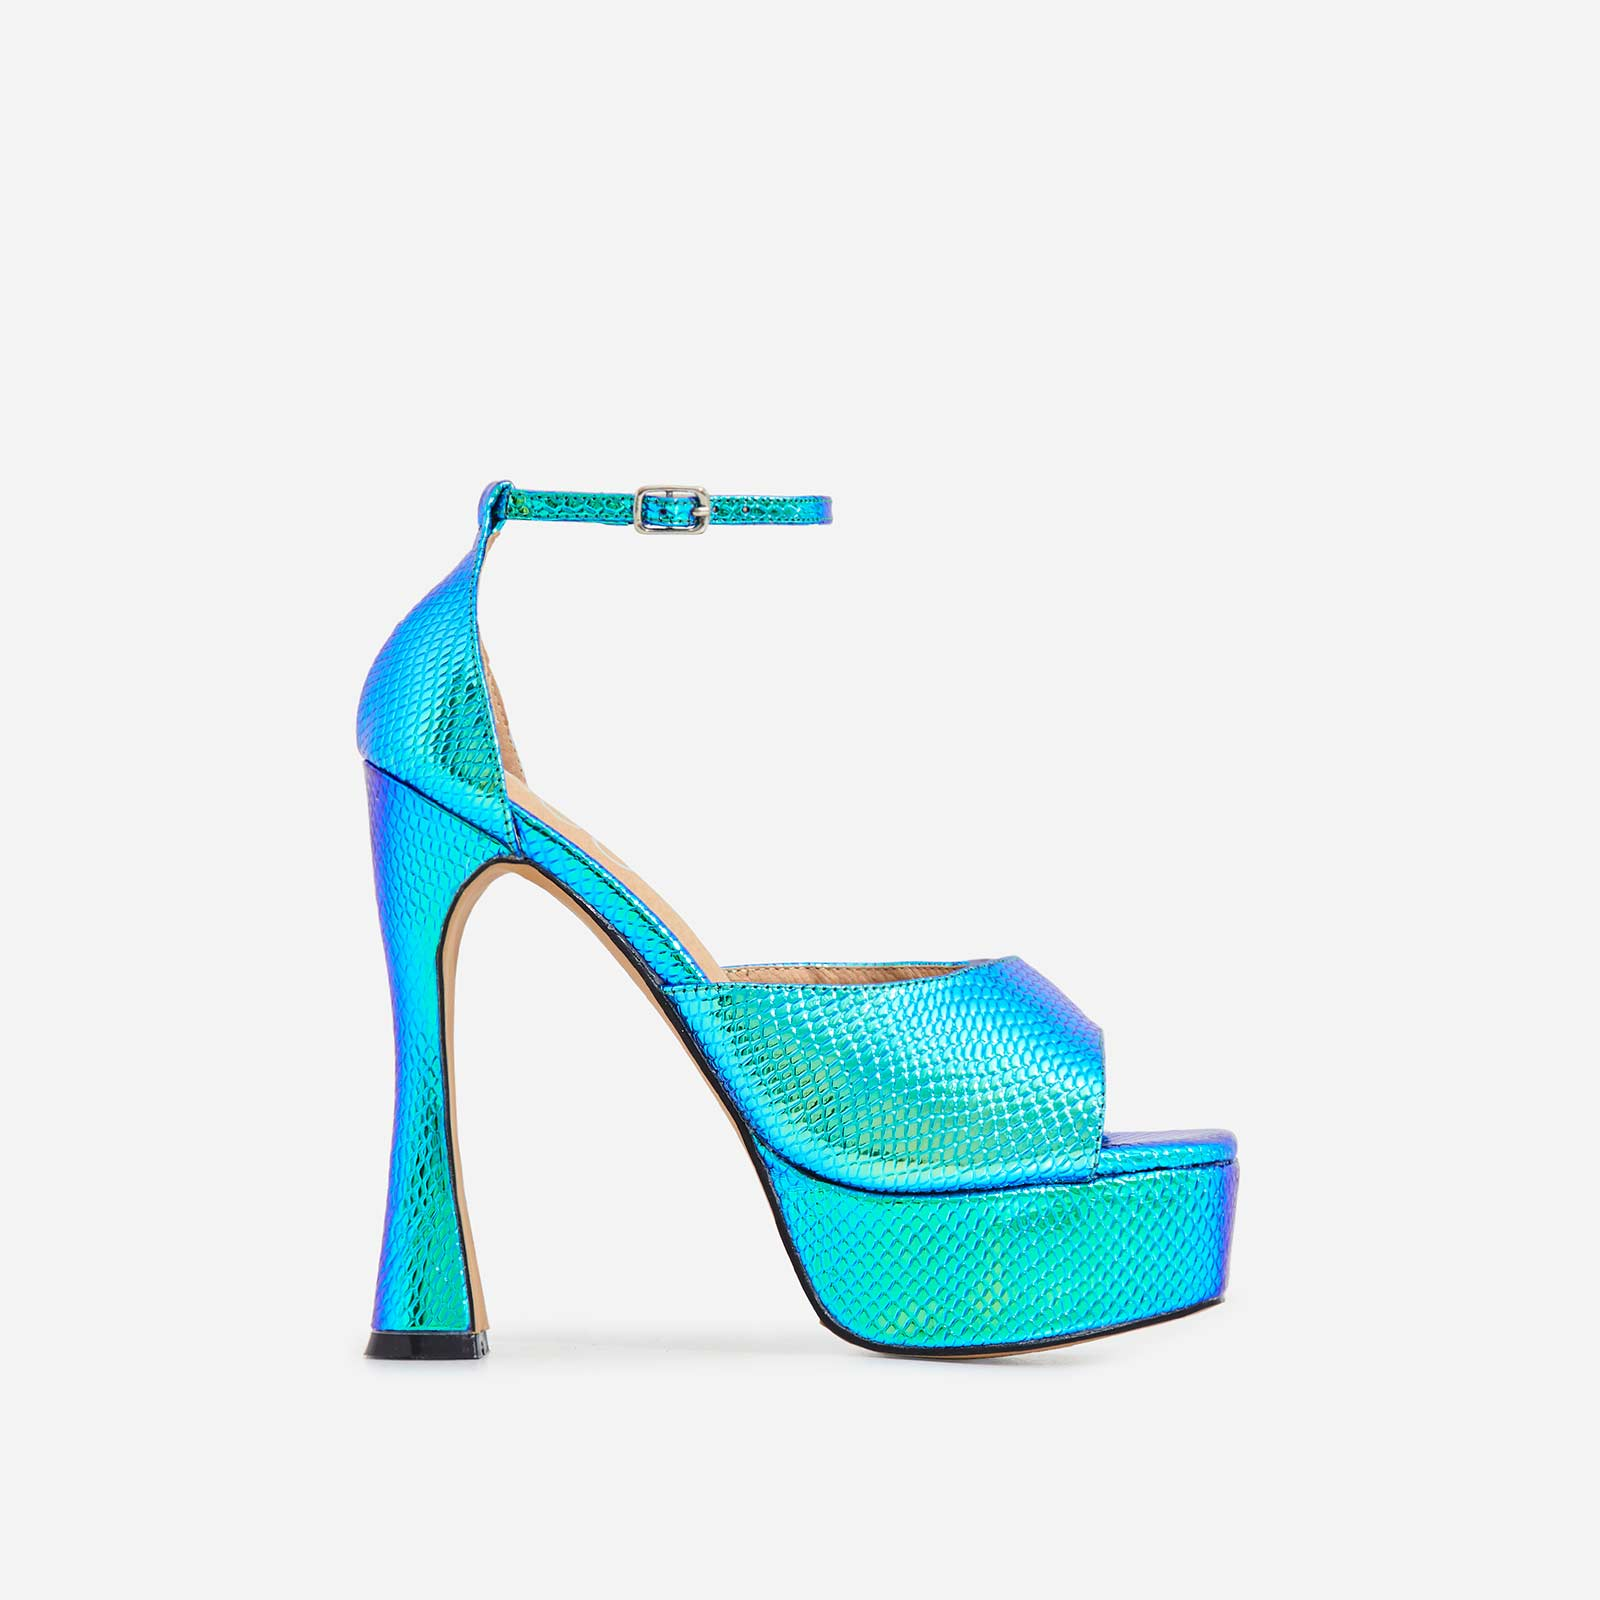 Kimmie Square Toe Platform Curved Heel In Metallic Blue Snake Print Faux Leather